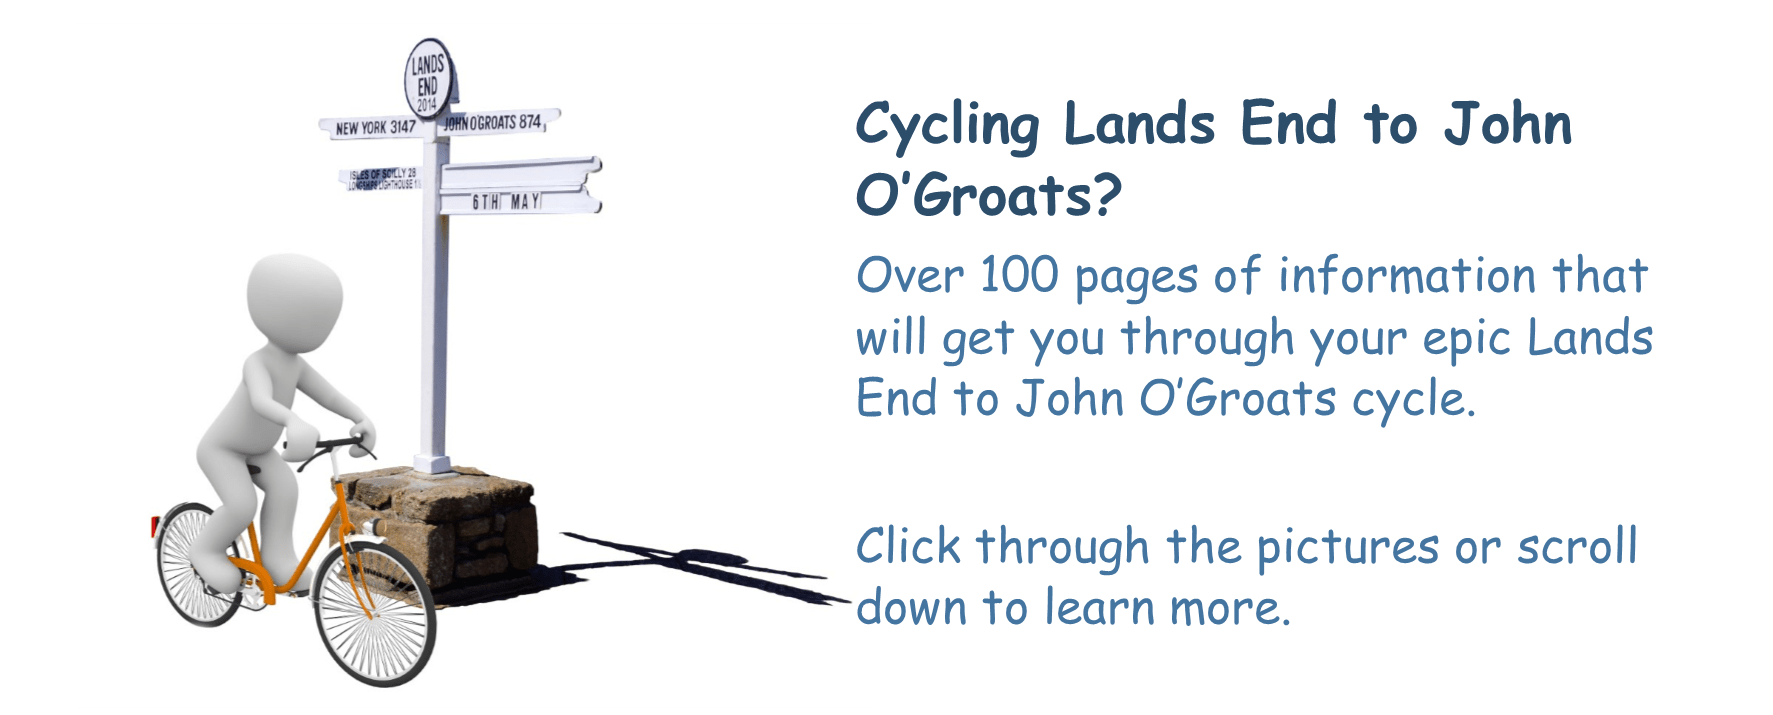 Lands End to John O'Groats Cycle Route Guide Slider Image 1 - Cycling Man at Lands End Signpost